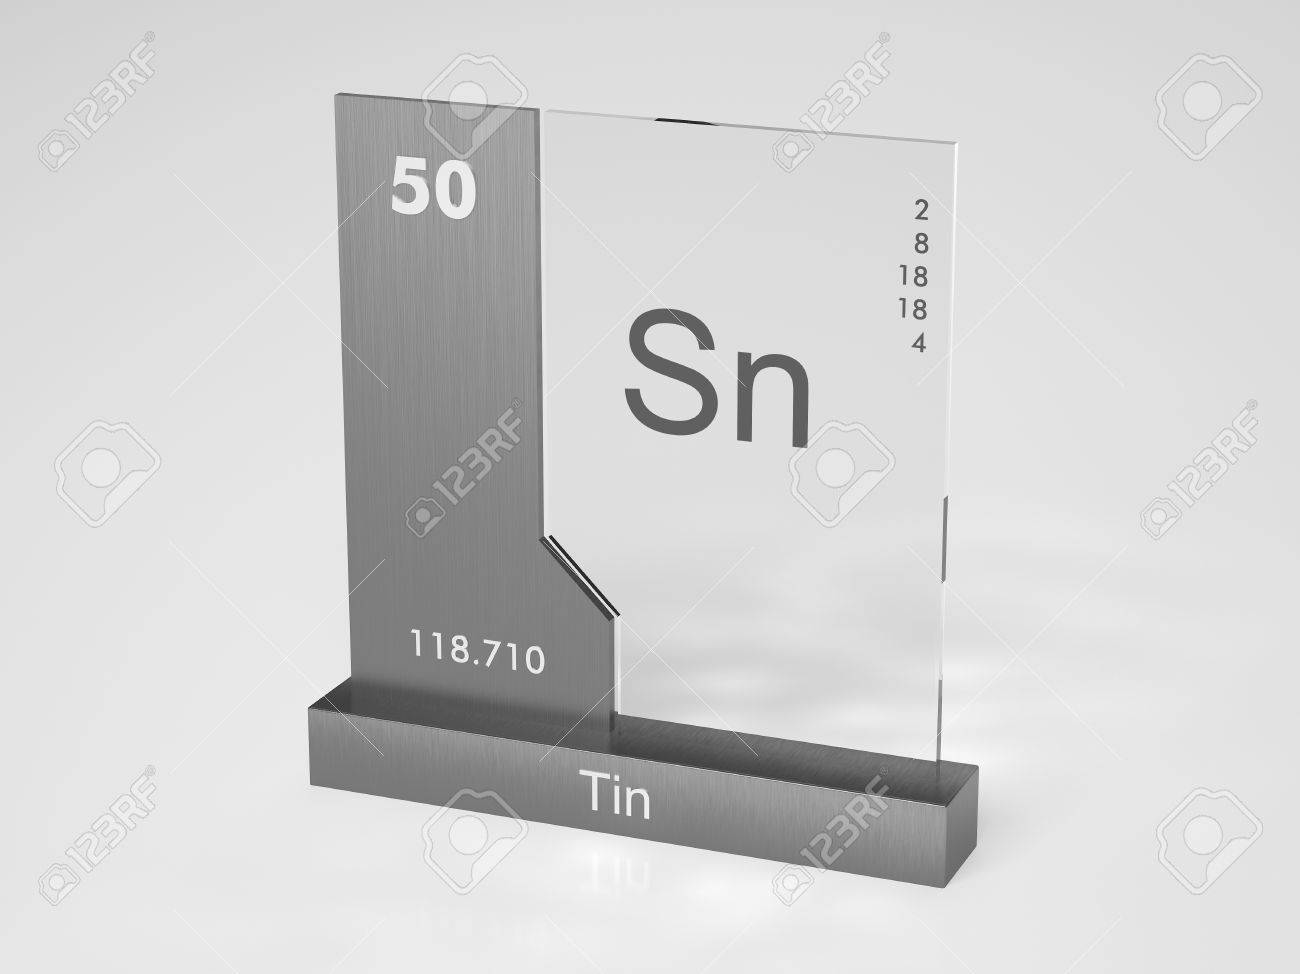 Tin symbol periodic table gallery periodic table images tin symbol sn chemical element of the periodic table stock tin symbol sn chemical element of gamestrikefo Gallery